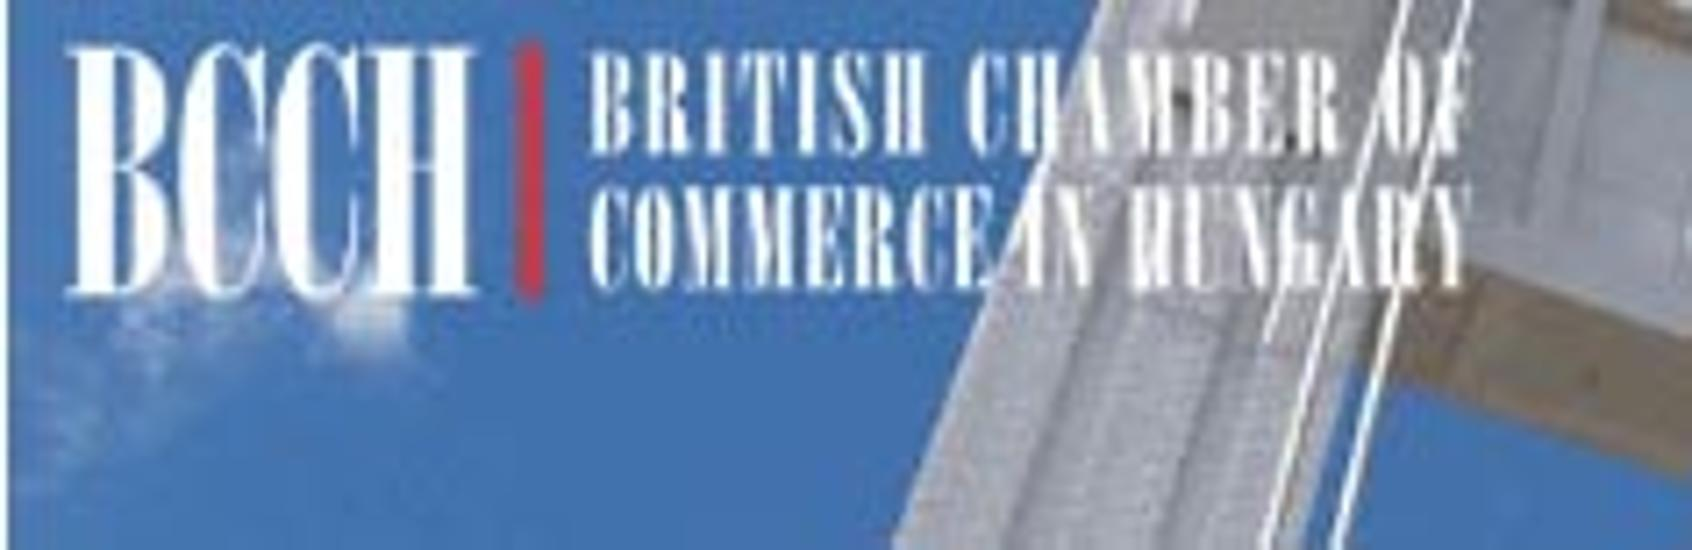 British Chamber of Commerce in Hungary